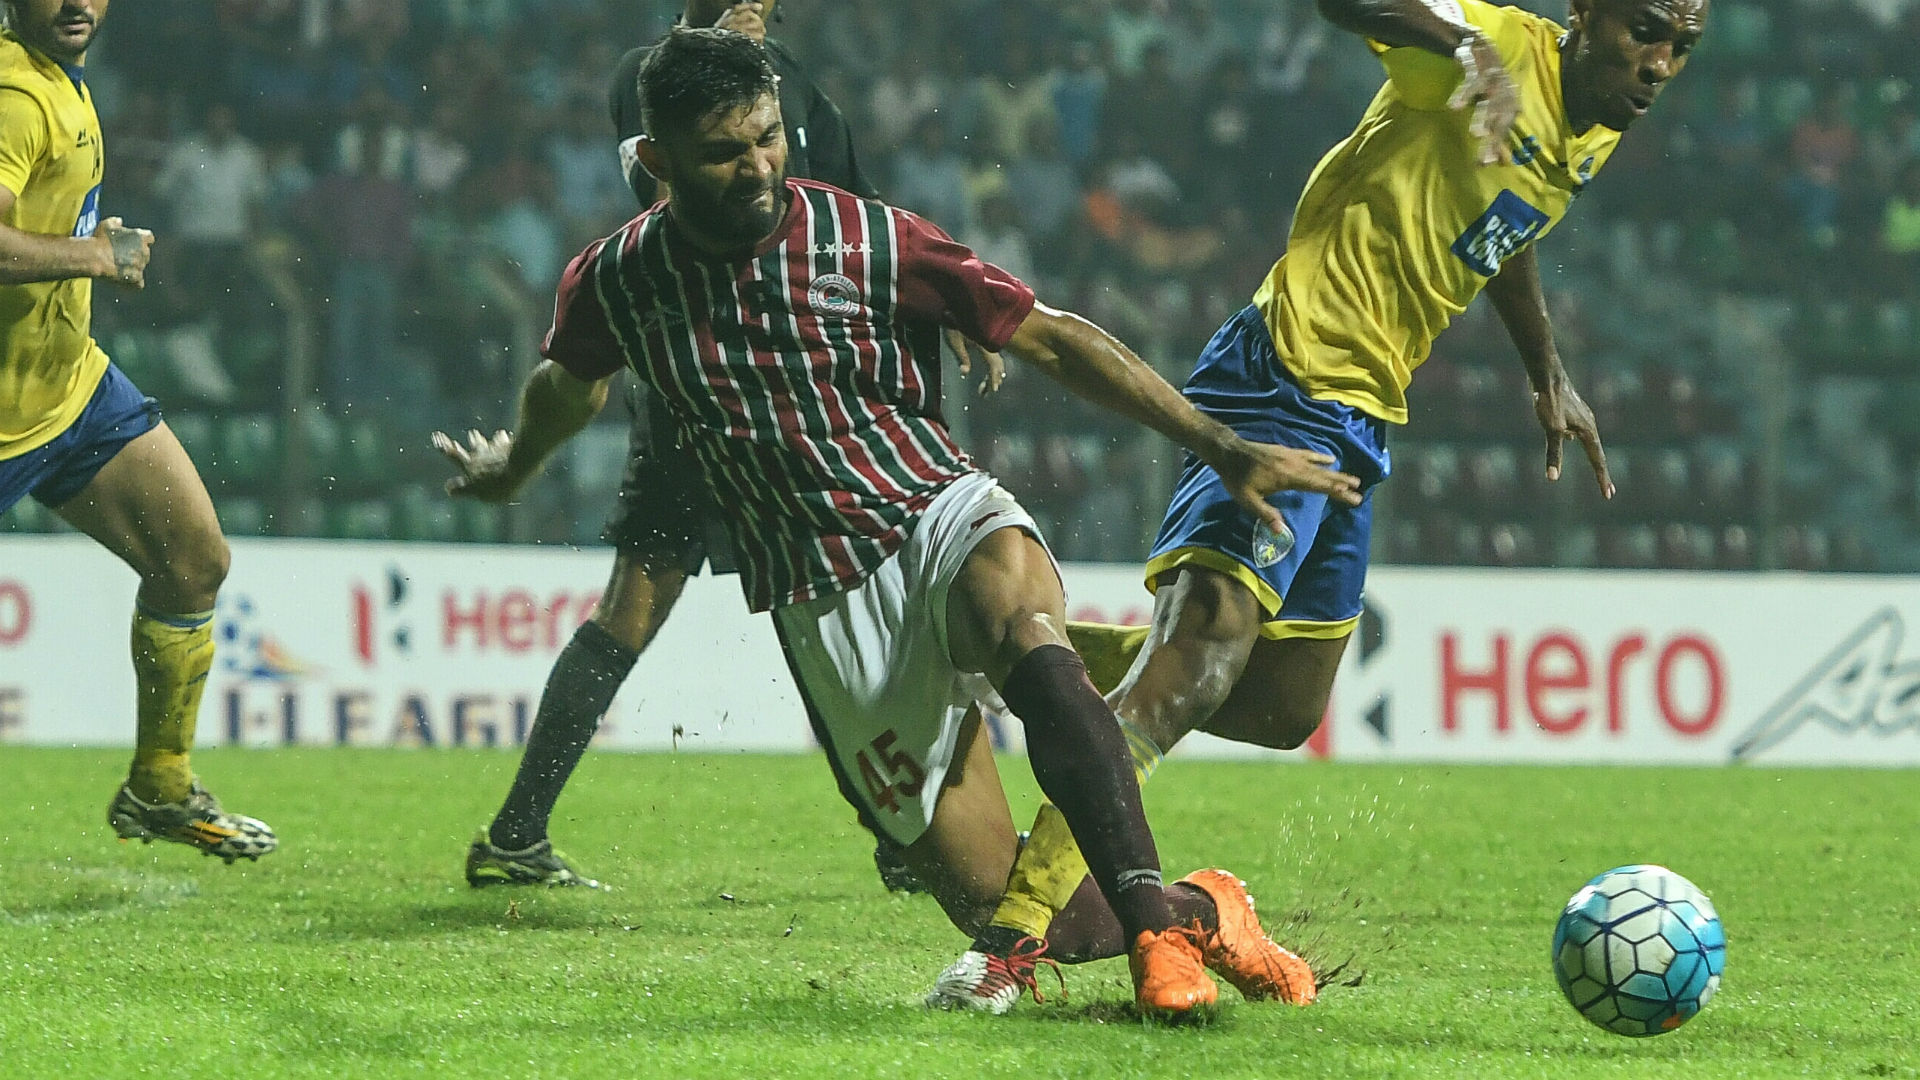 Anas Edathodika Mohun Bagan I-League 2017